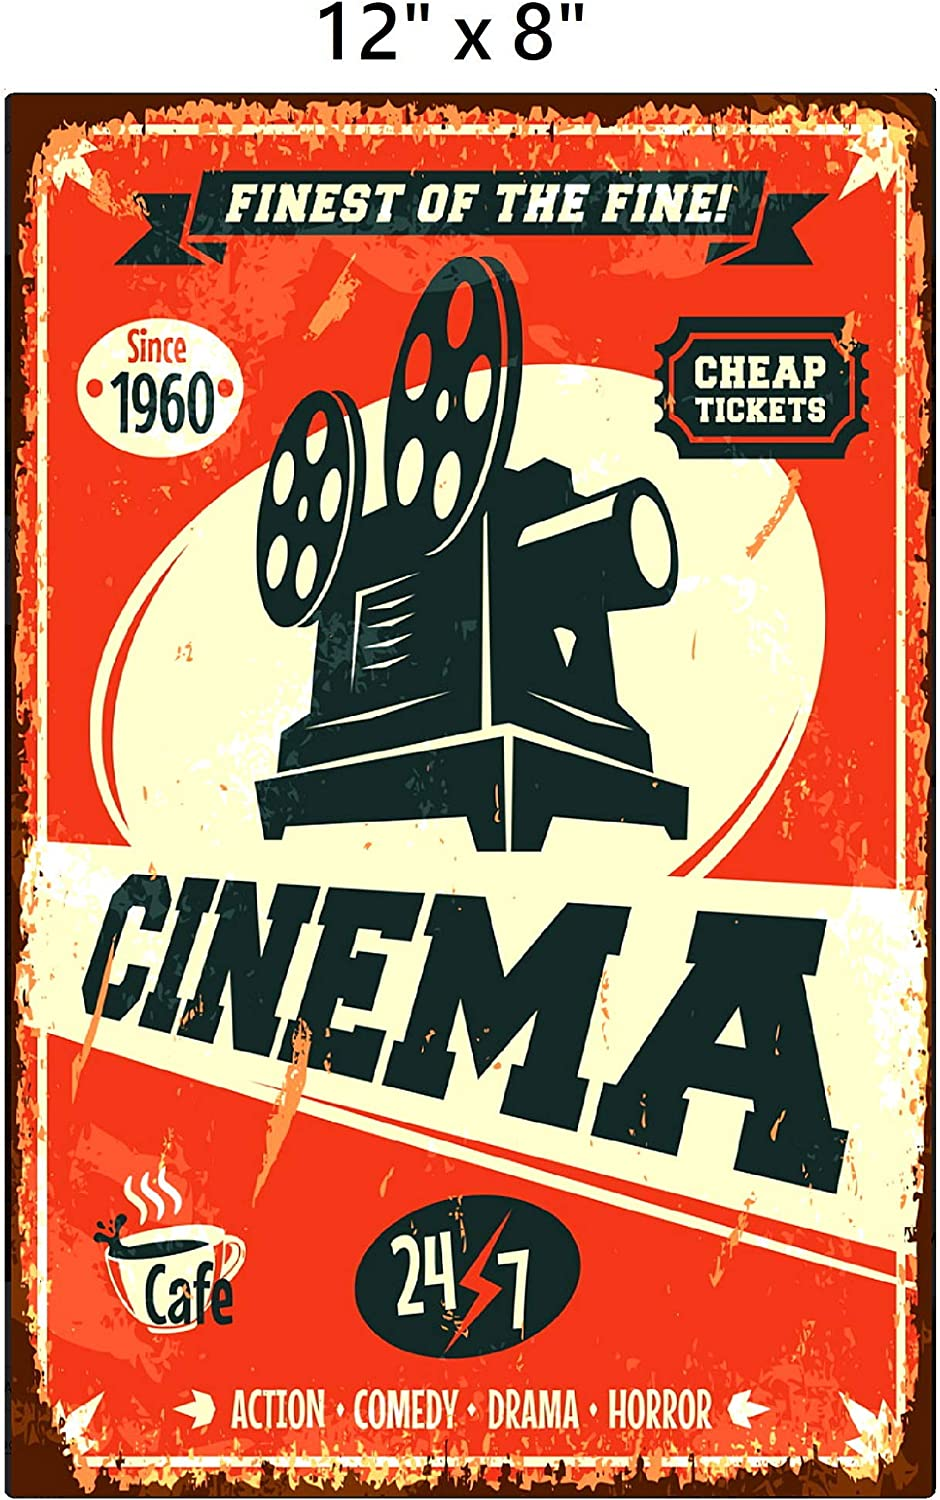 UNiQ Designs CINEMA Media Room Decor Tin Signs Theater Sign - Movie Room Decor Accessories - Film Decor - Cinema Decor - Home Movie Theater Decor - Movie Reel Wall Decor - Vintage Movie Decor 12x8